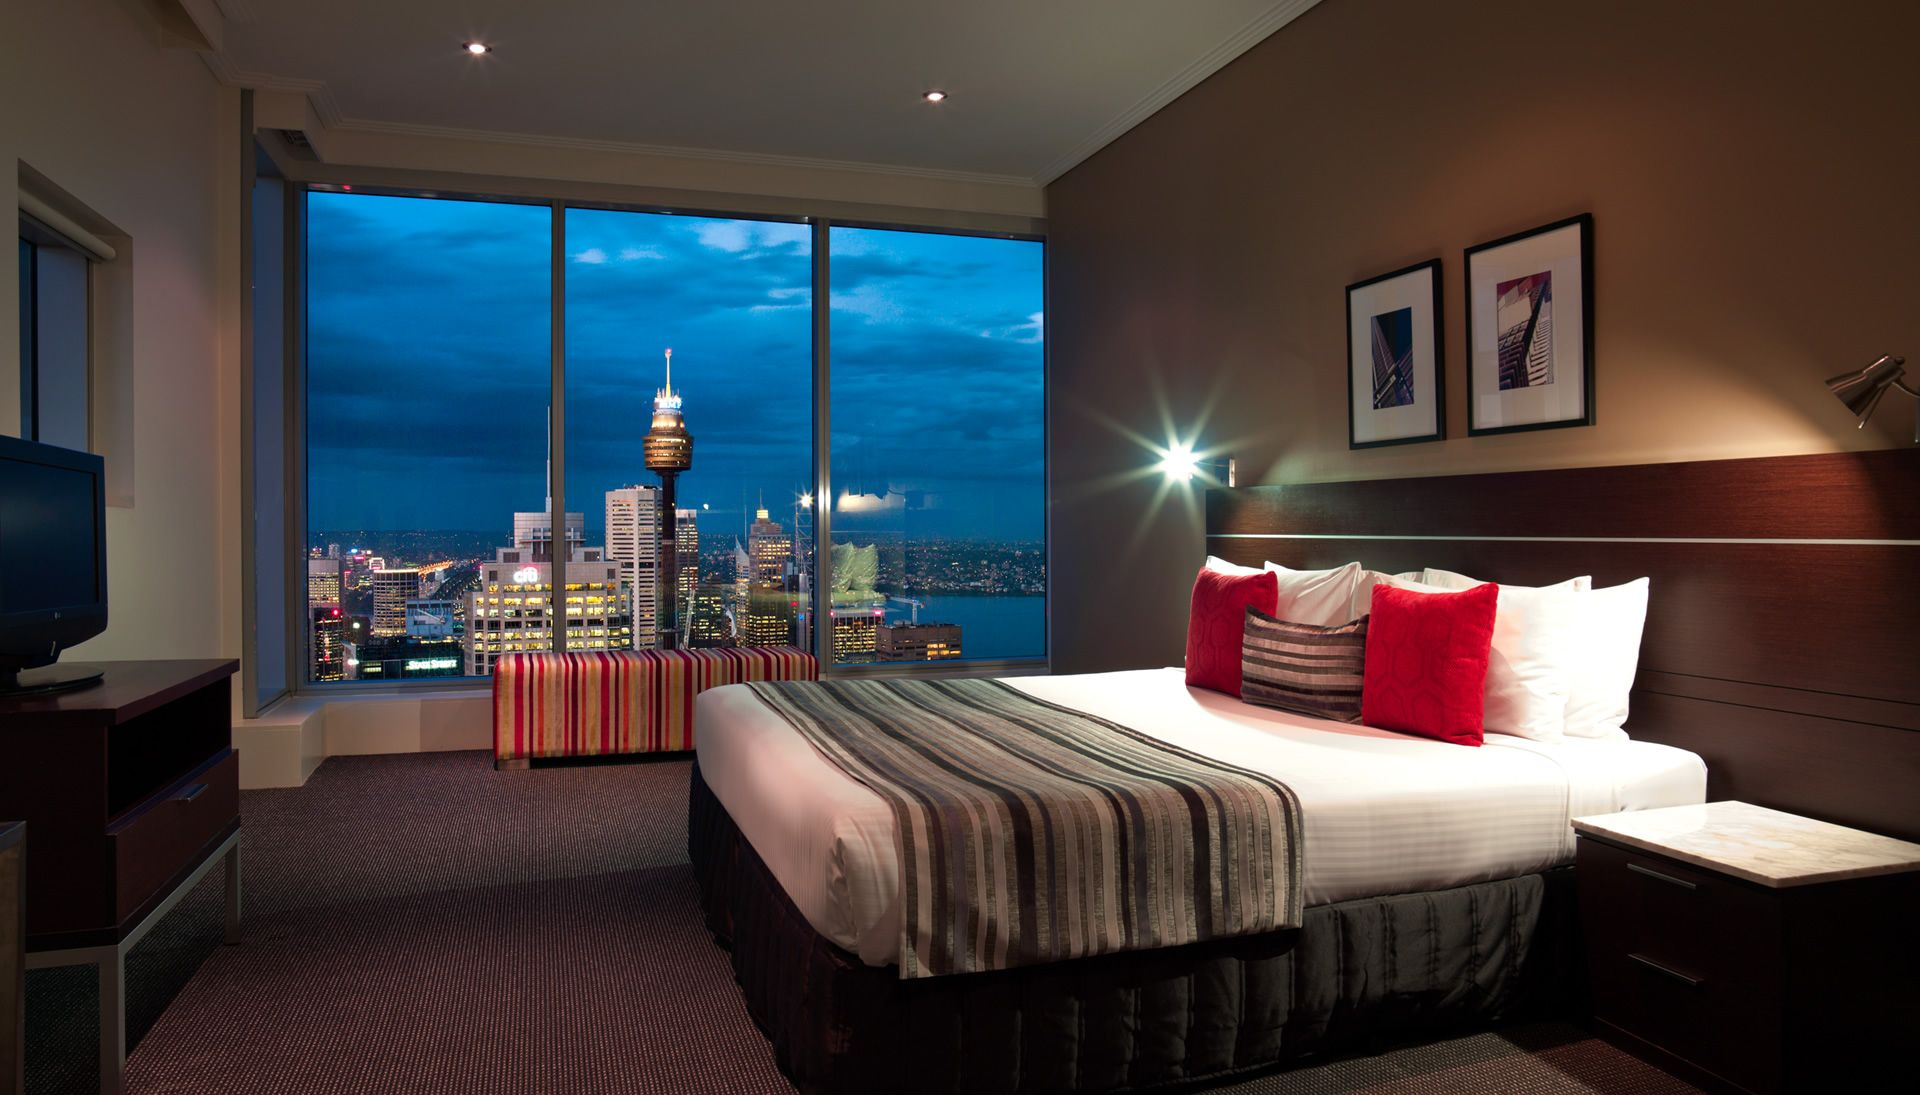 Meriton Serviced Apartment House. Penthouse Apartments Sydney ...